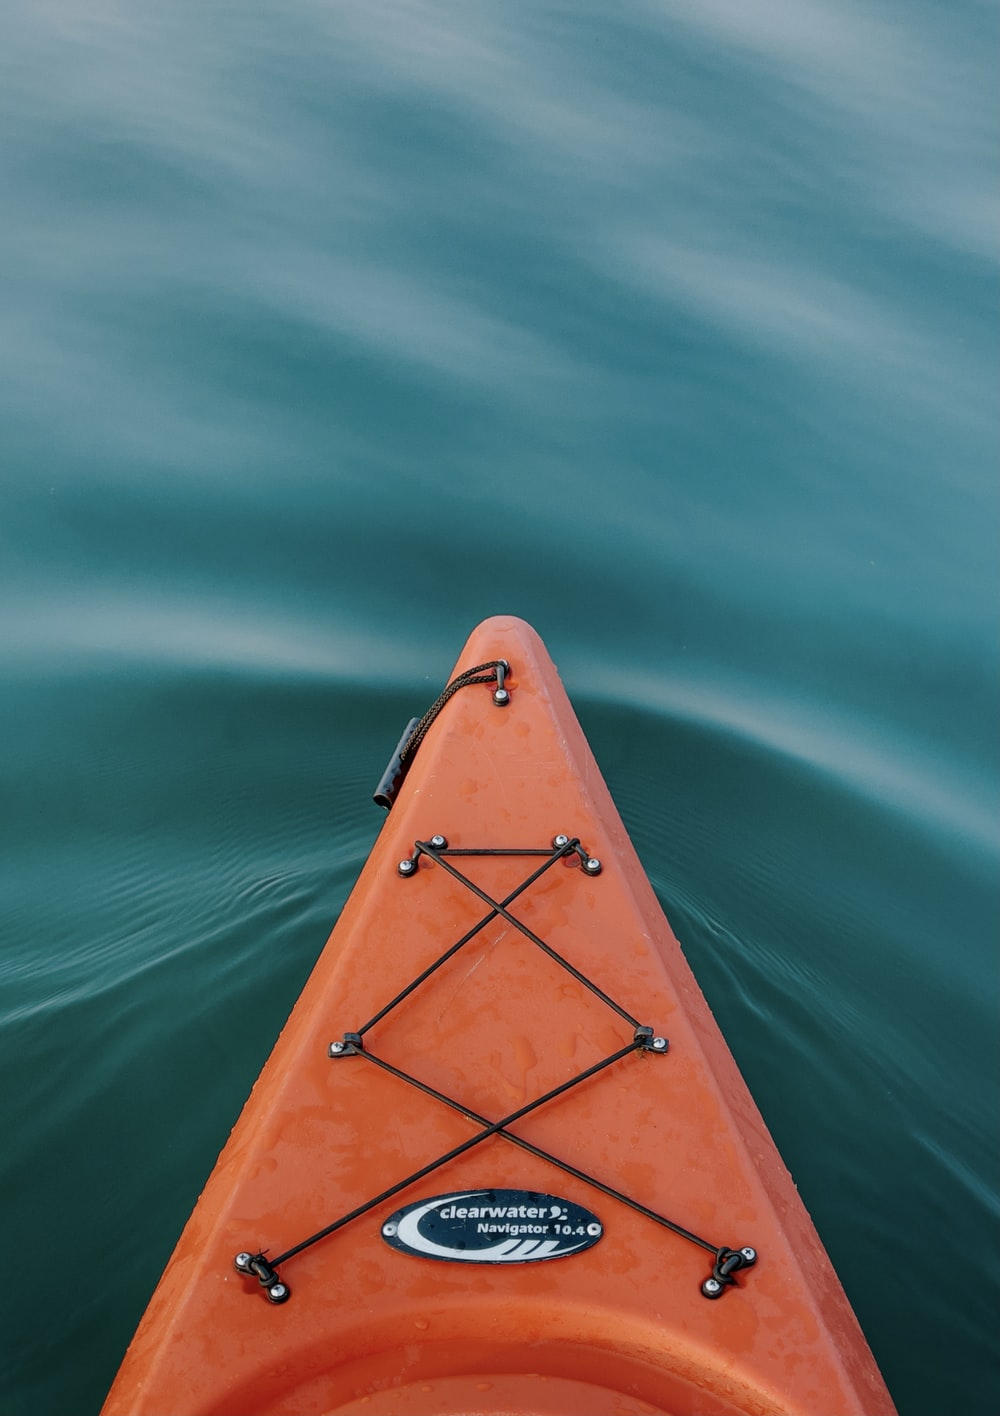 brown boat on green water